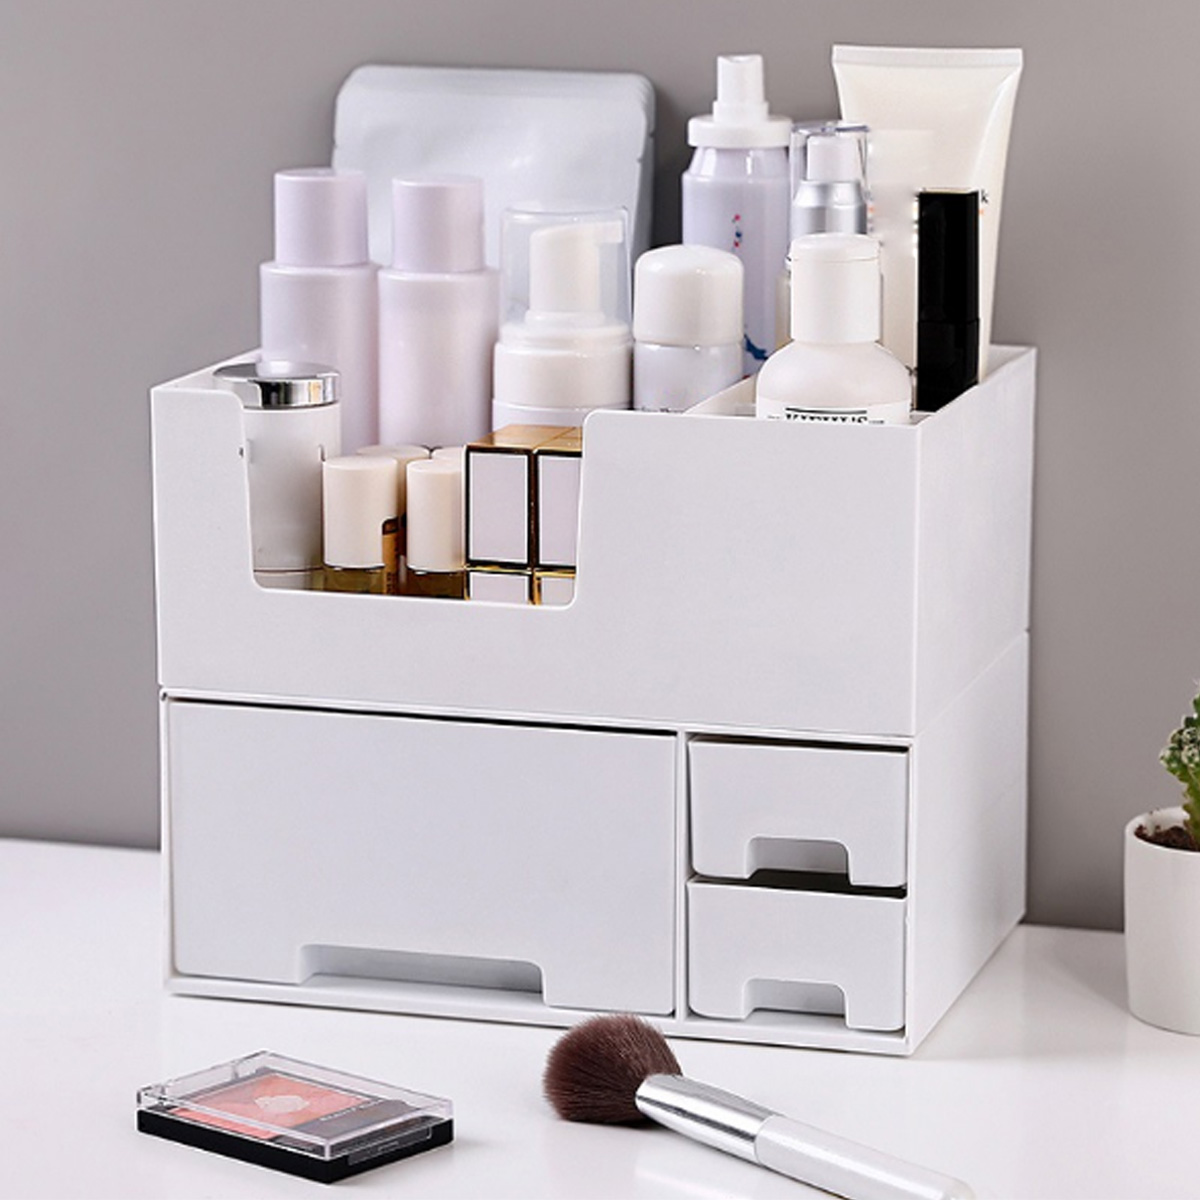 Cosmetics Storage Box Makeup Organizer 2 Layers Detachable Drawer Desktop Sundries Container Nail Polish Lipstick Storage Box Jewelry Case